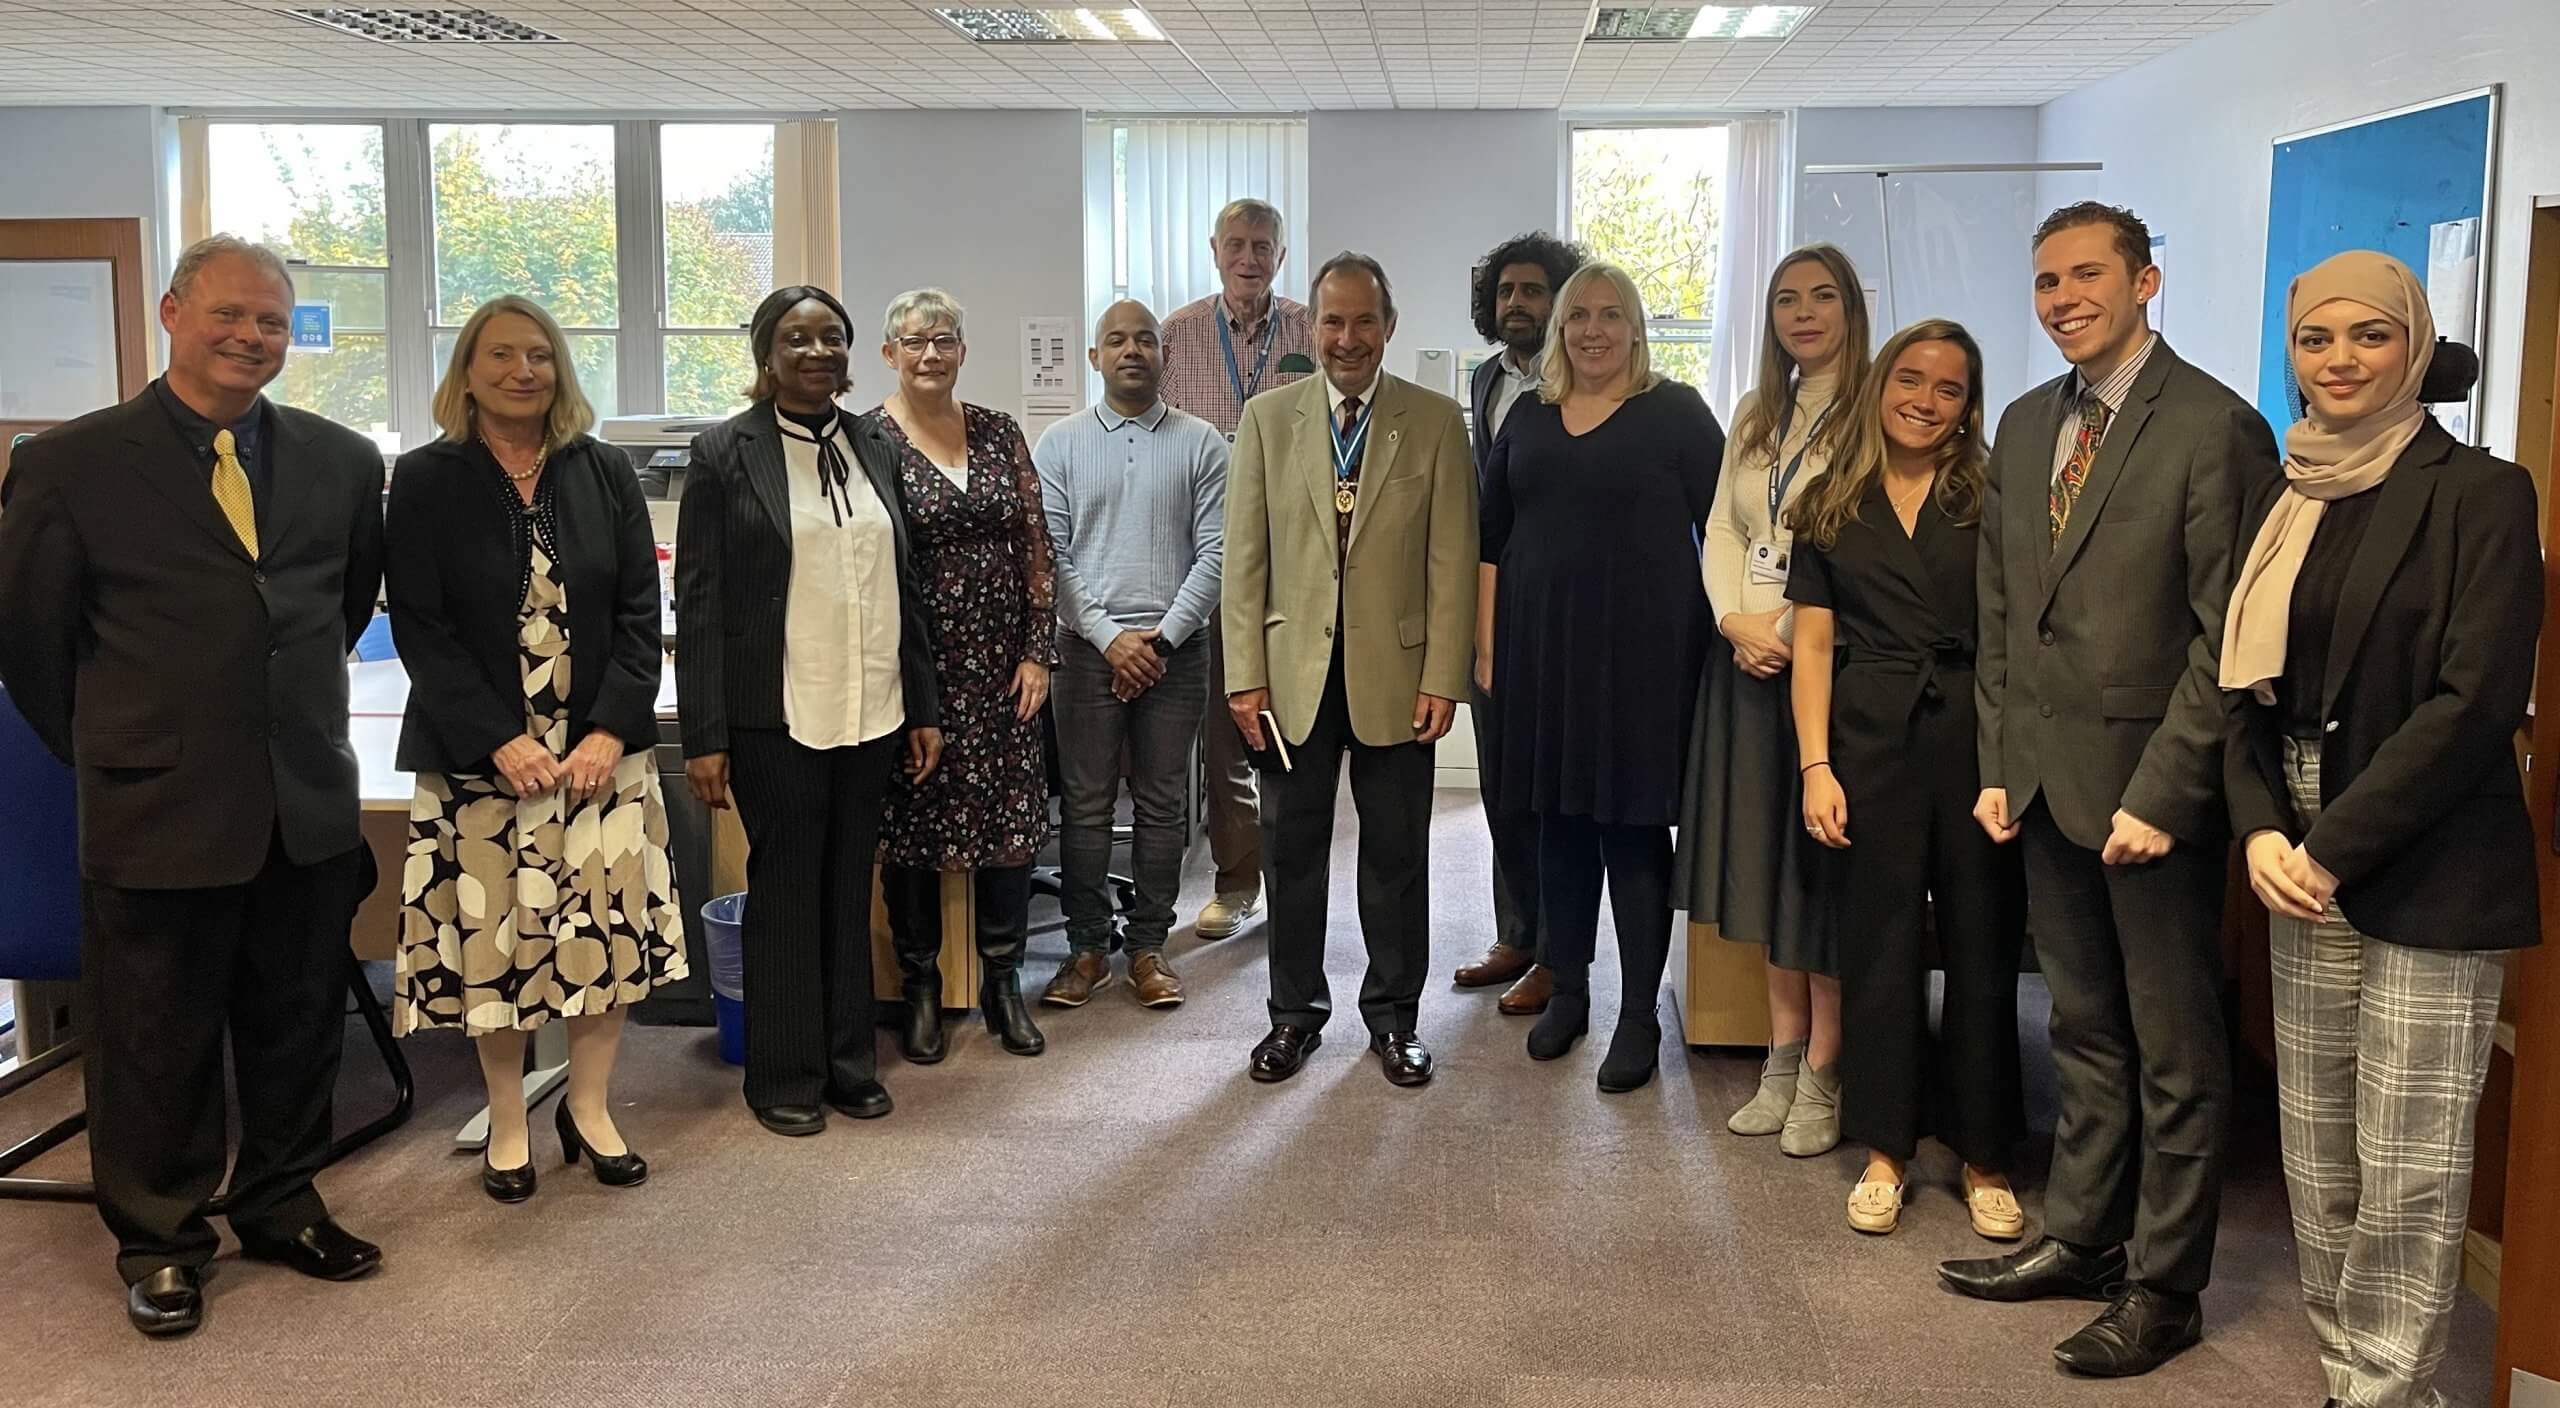 High Sheriff of West Sussex recognises hard work of volunteers